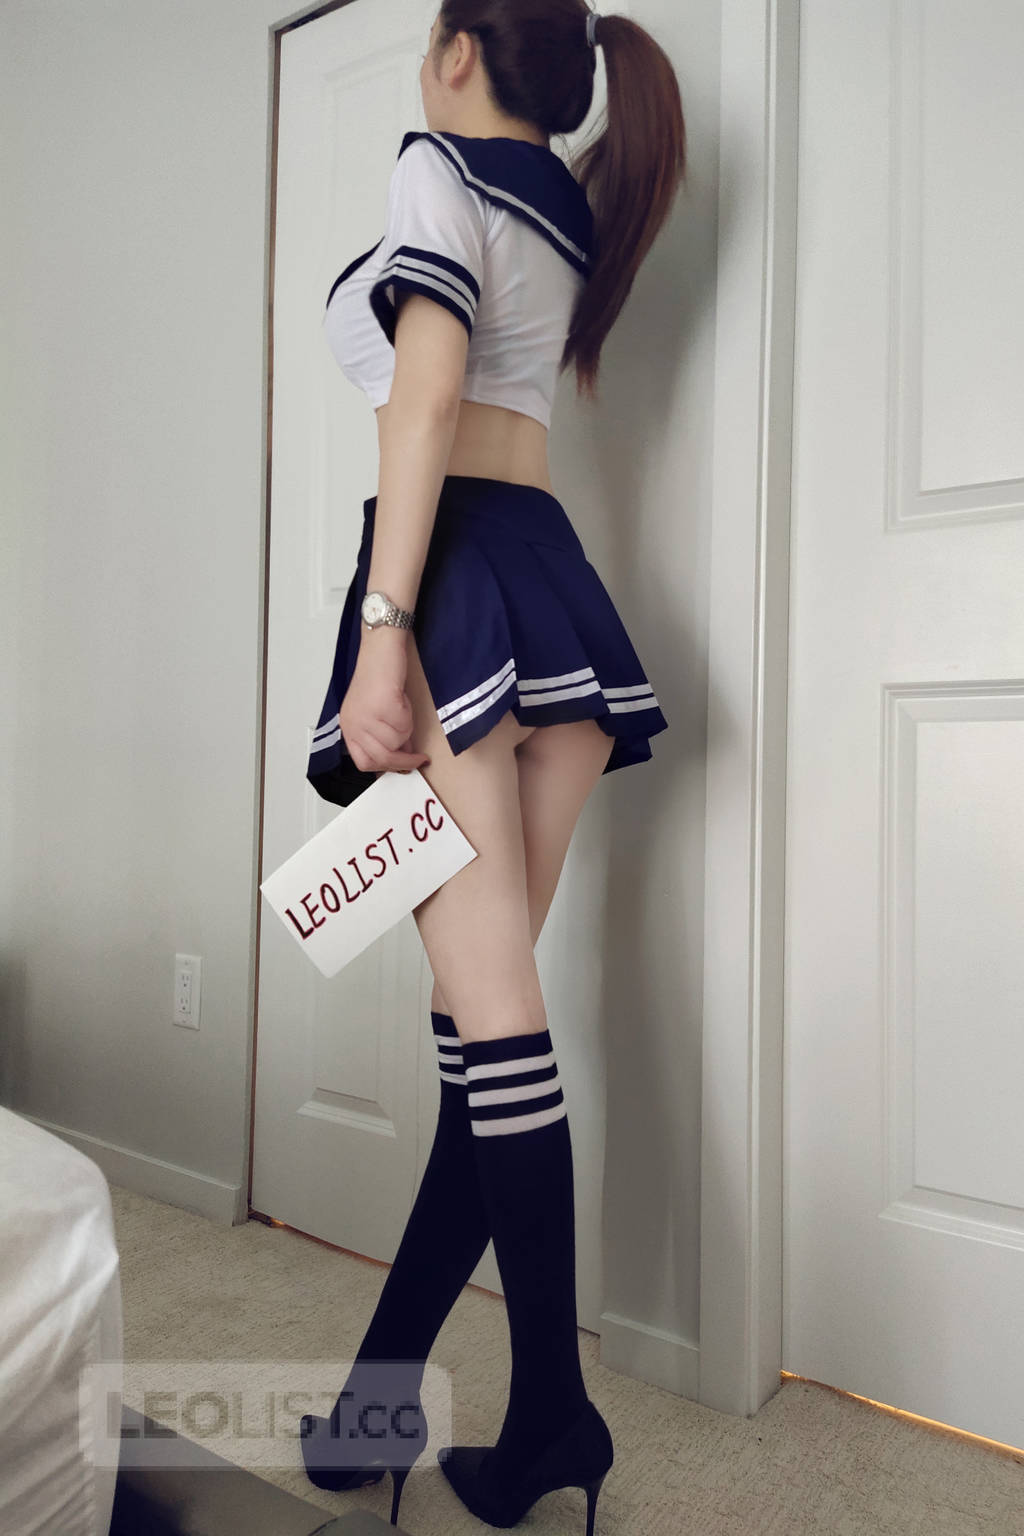 Pretty Asian Girl Just Landed, Contact me now